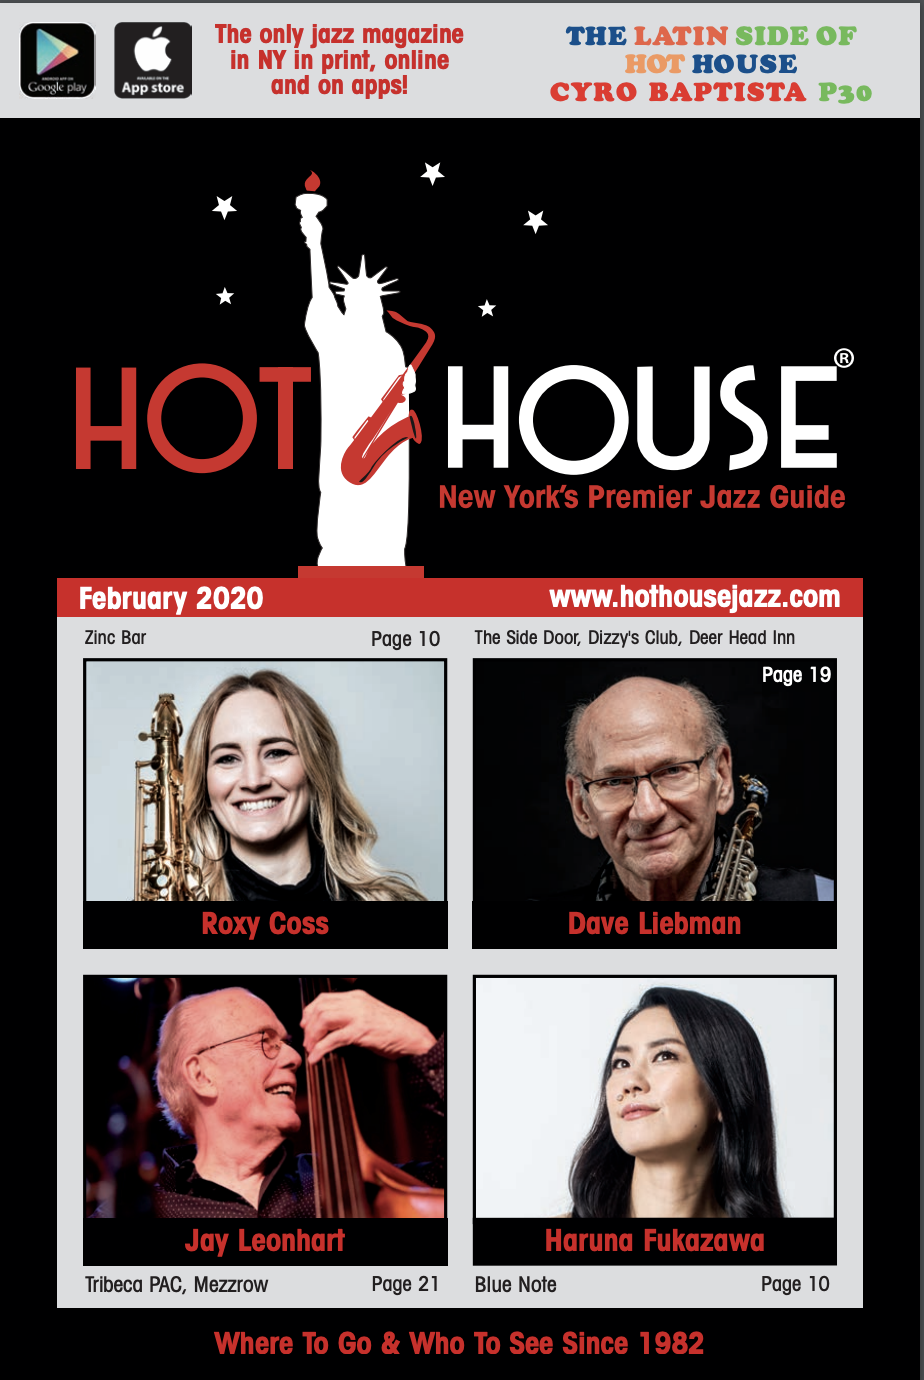 Roxy Coss, Dave Liebman, Rachel Therrien and Vince Ector in February 2020 Hot House